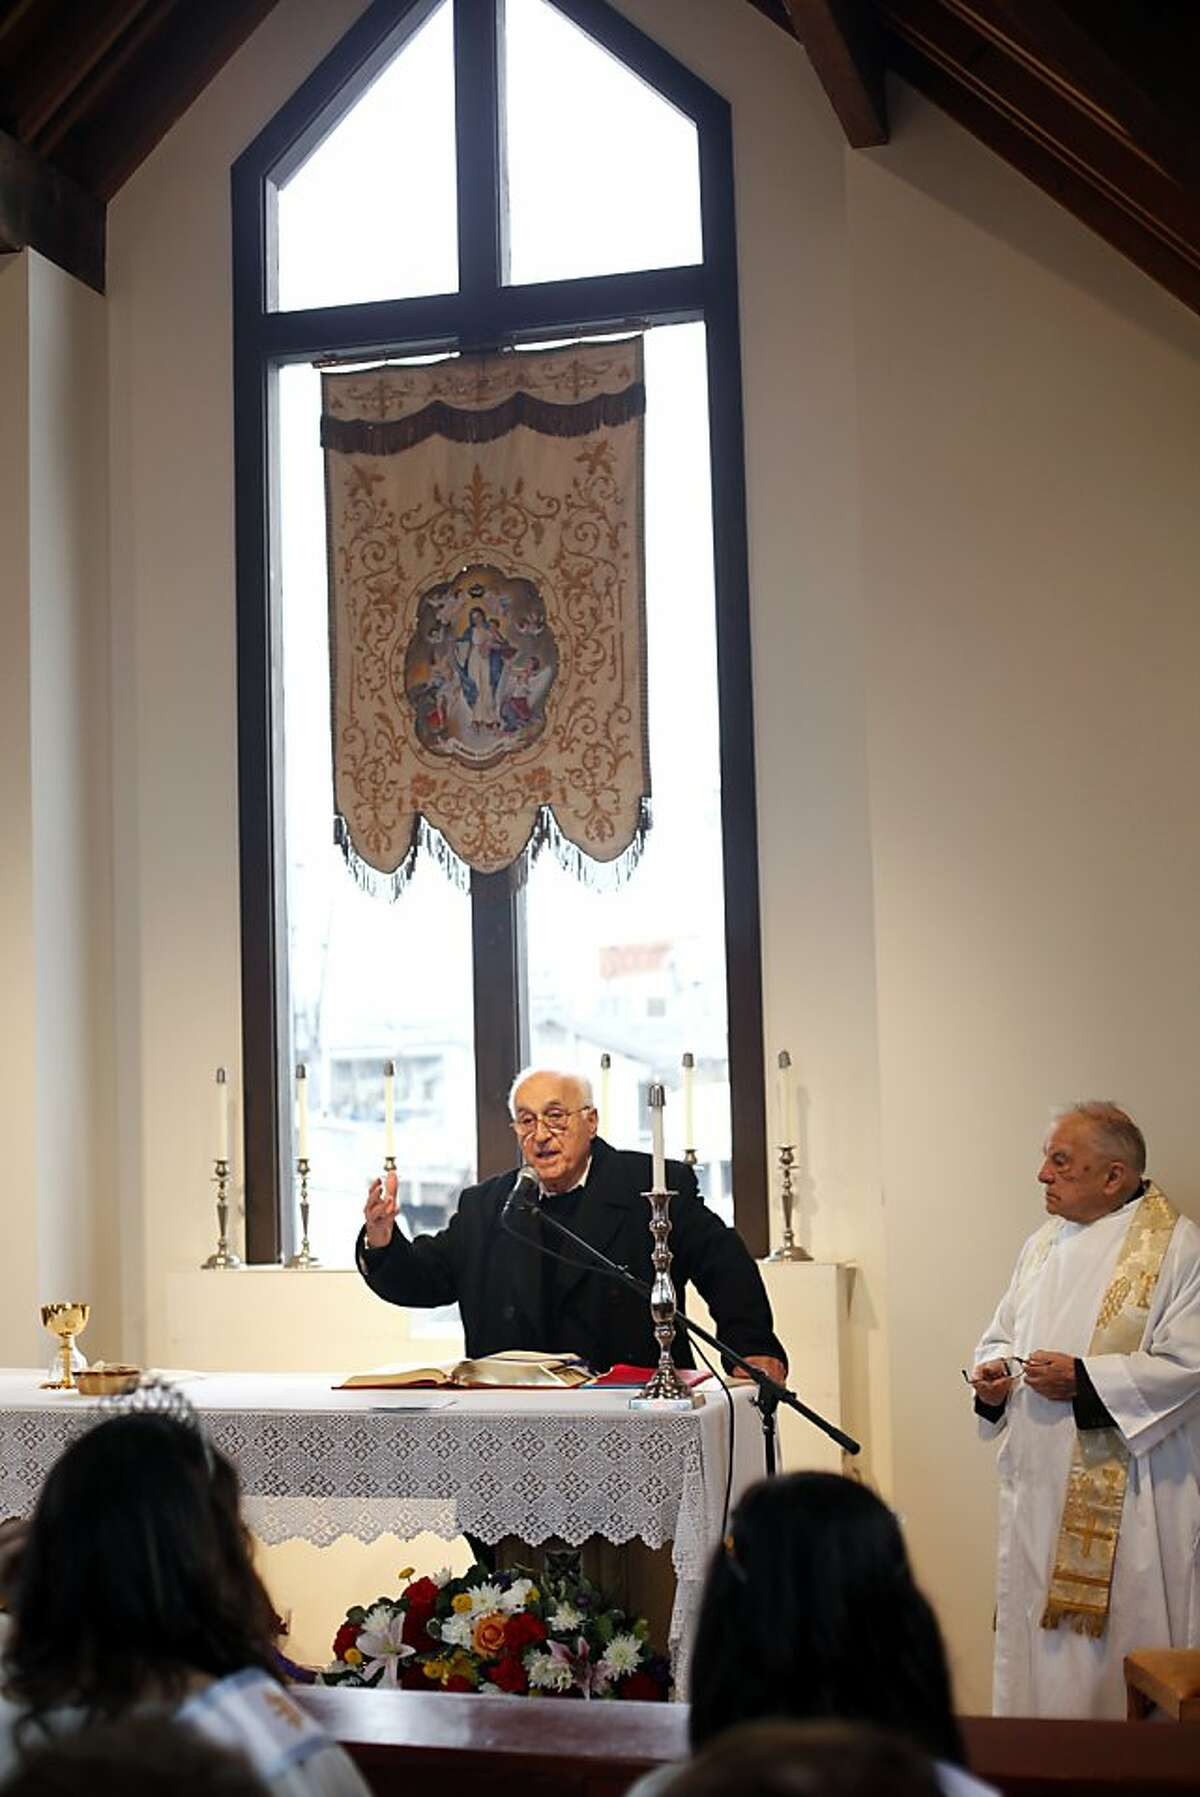 Alessandro Baccari Jr. speaks during Mass at the Fishermen's and Seamen's Memorial Chapel.